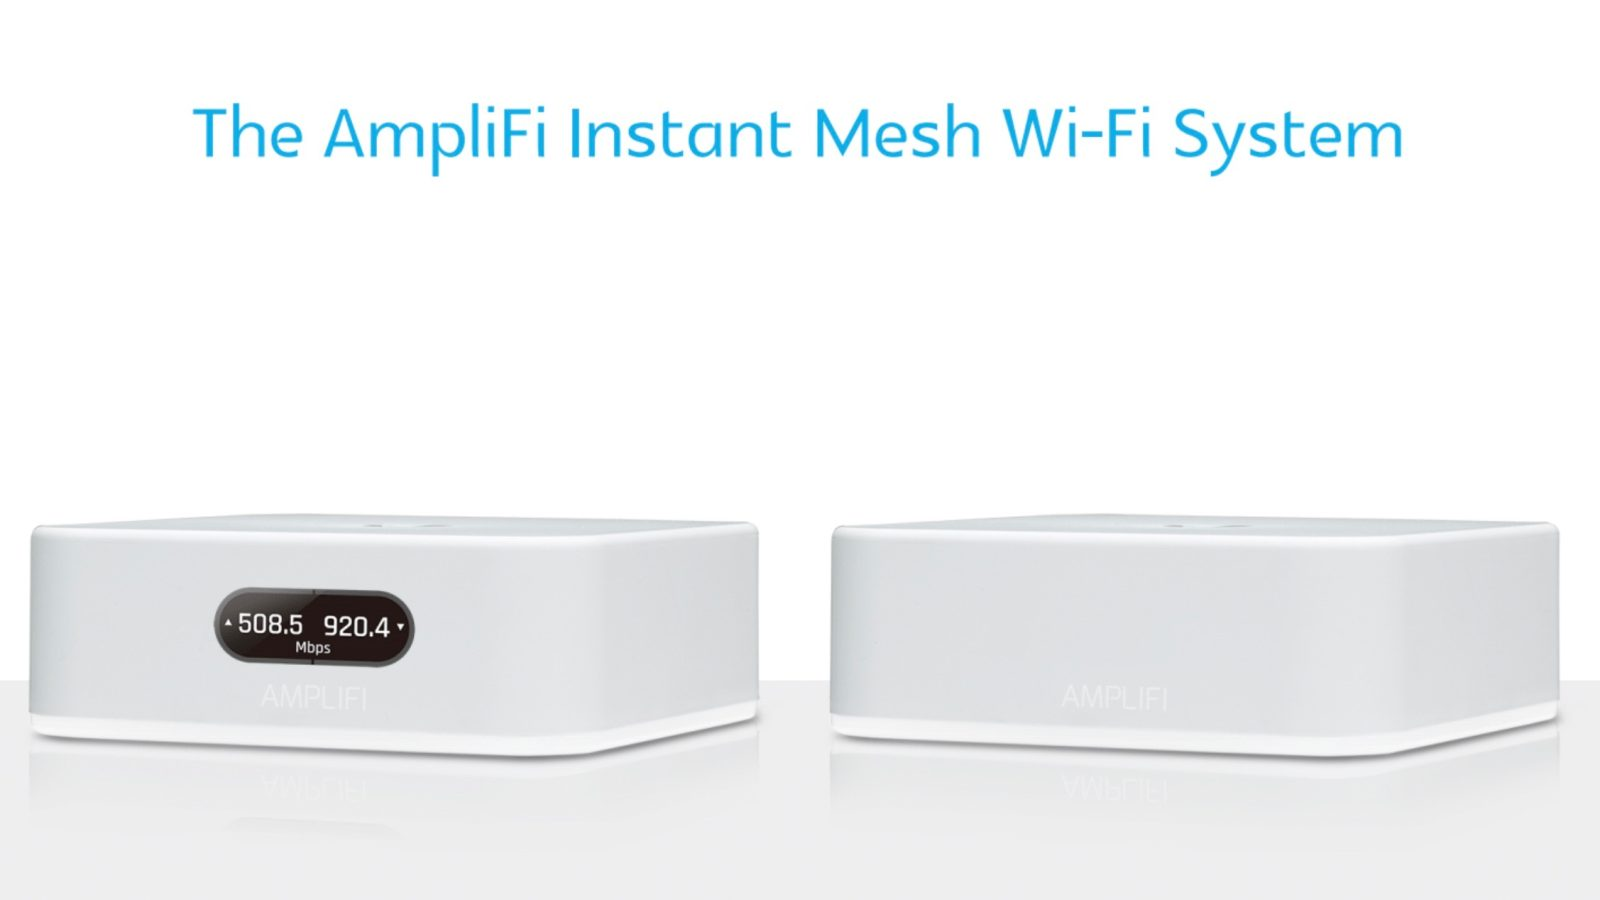 Ubiquiti releases new AmpliFi Instant Mesh Wi-Fi System, sets up in